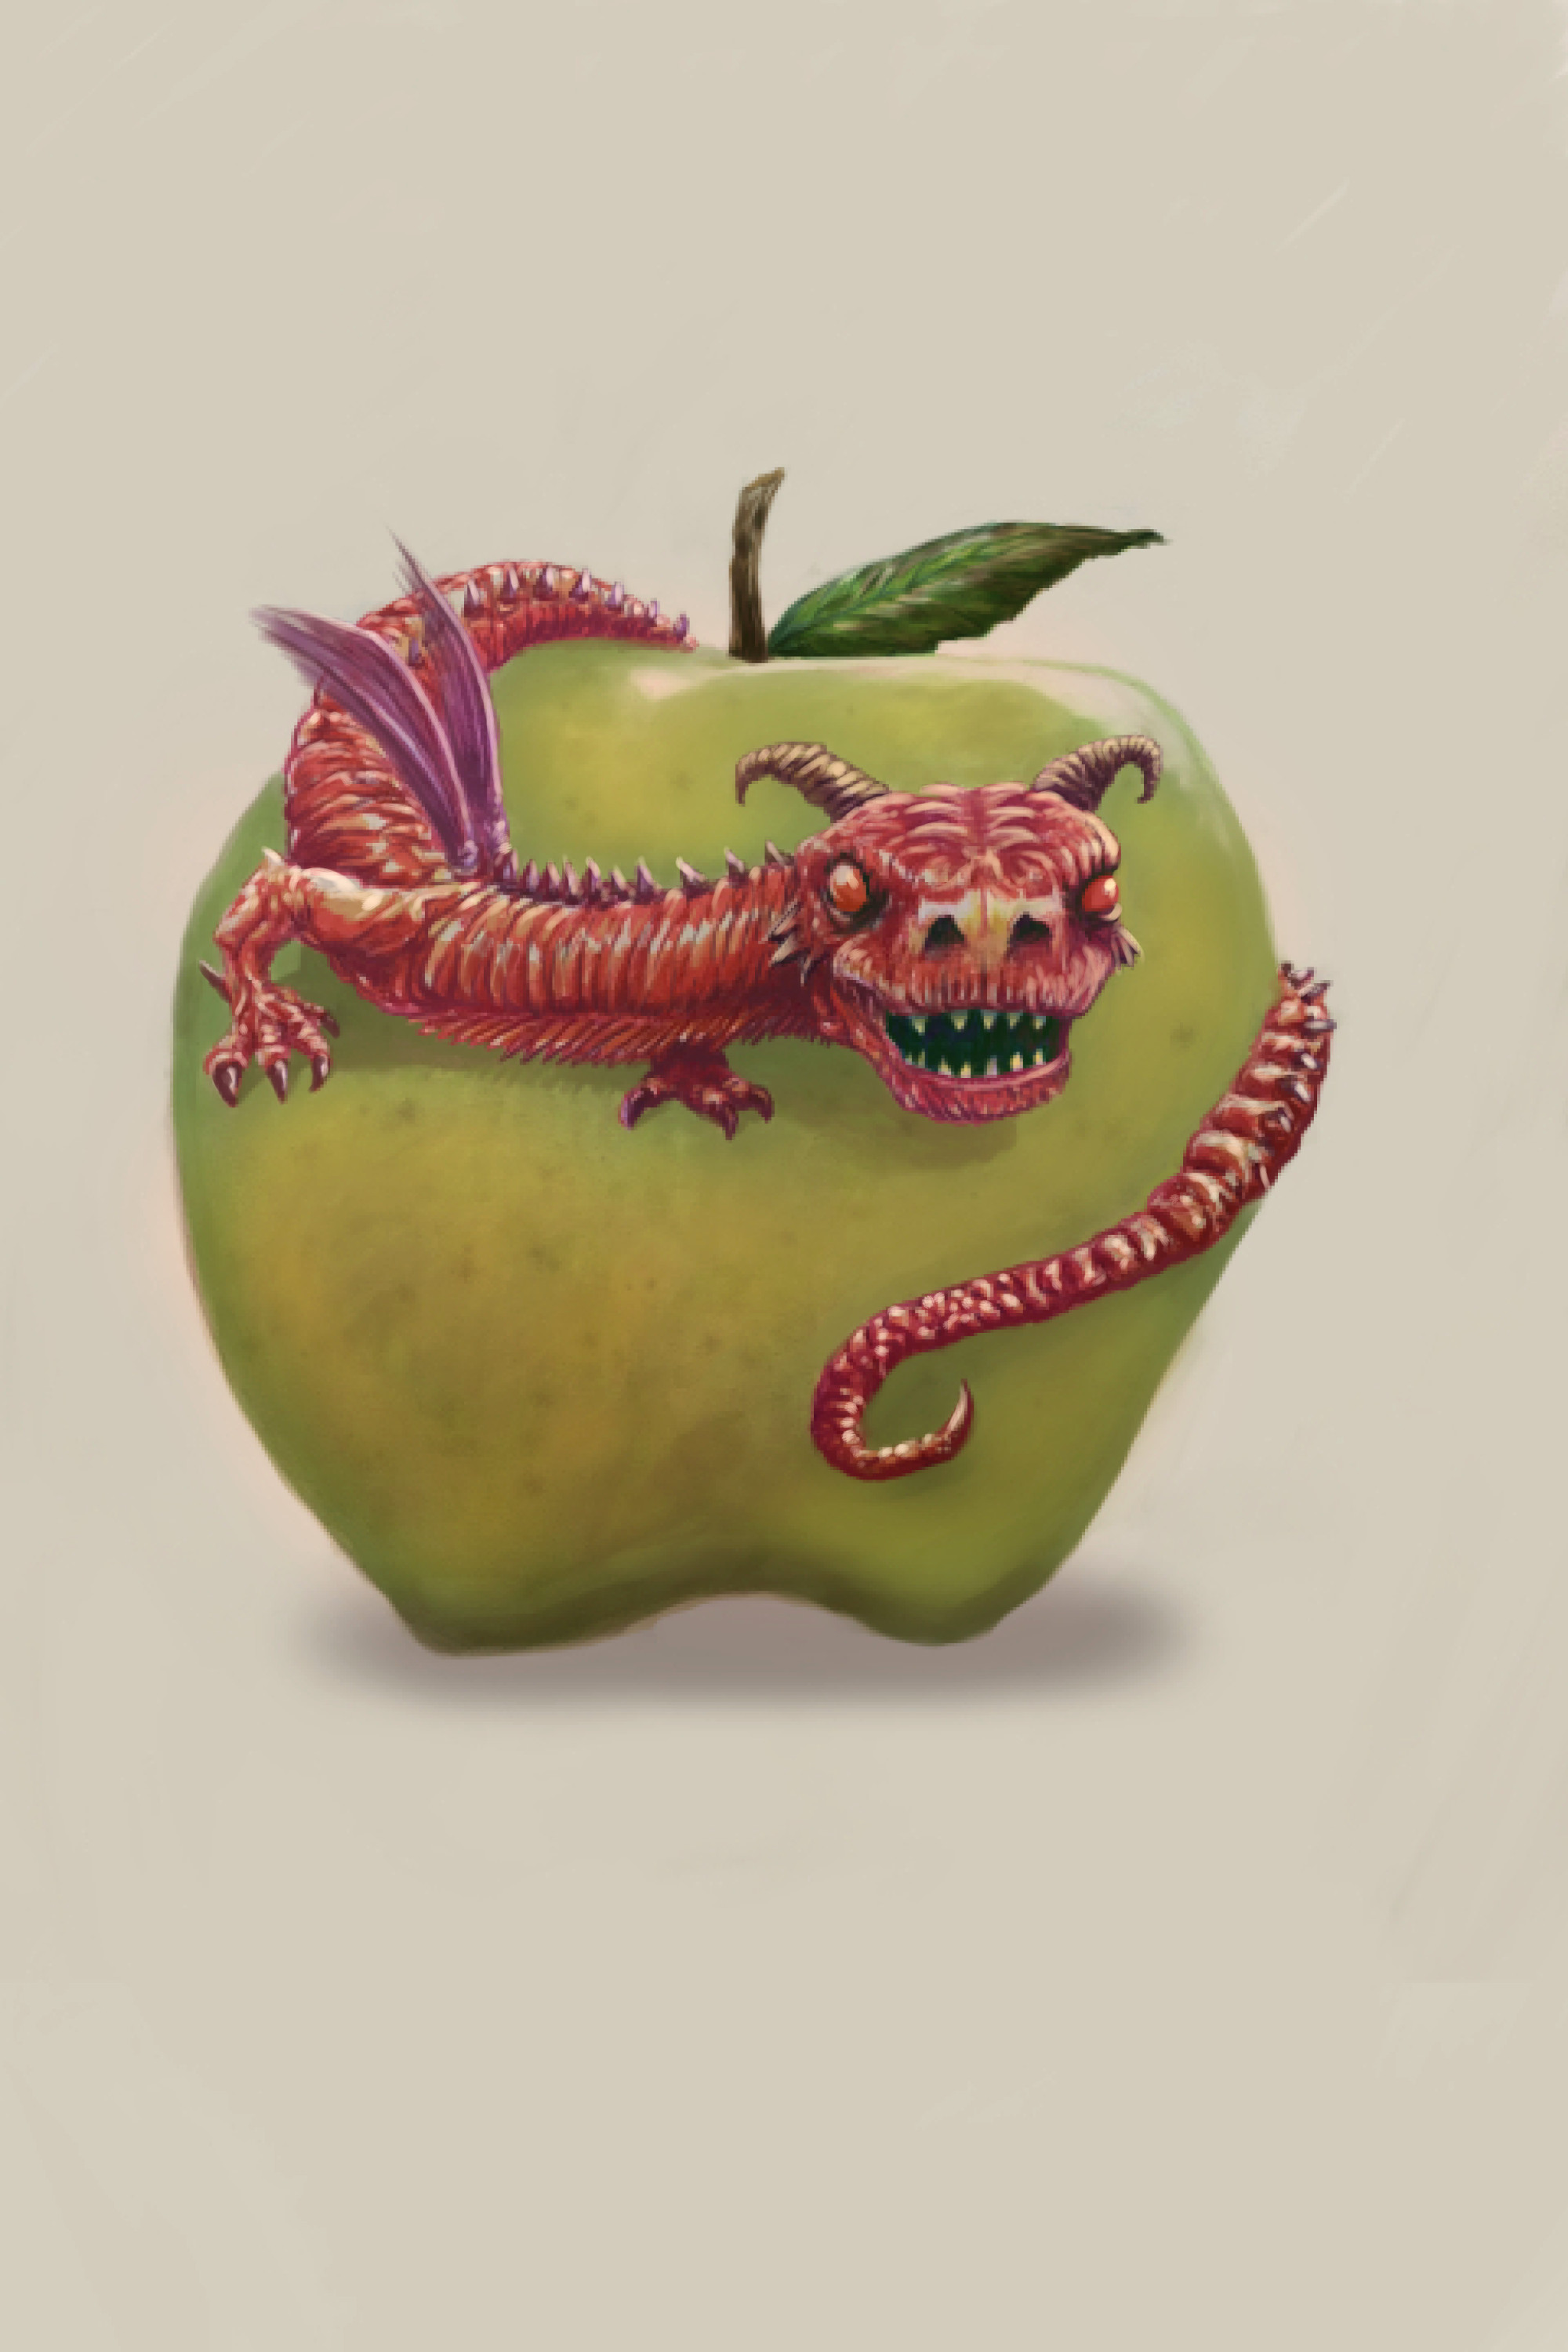 Fuji, The Apple Dragon